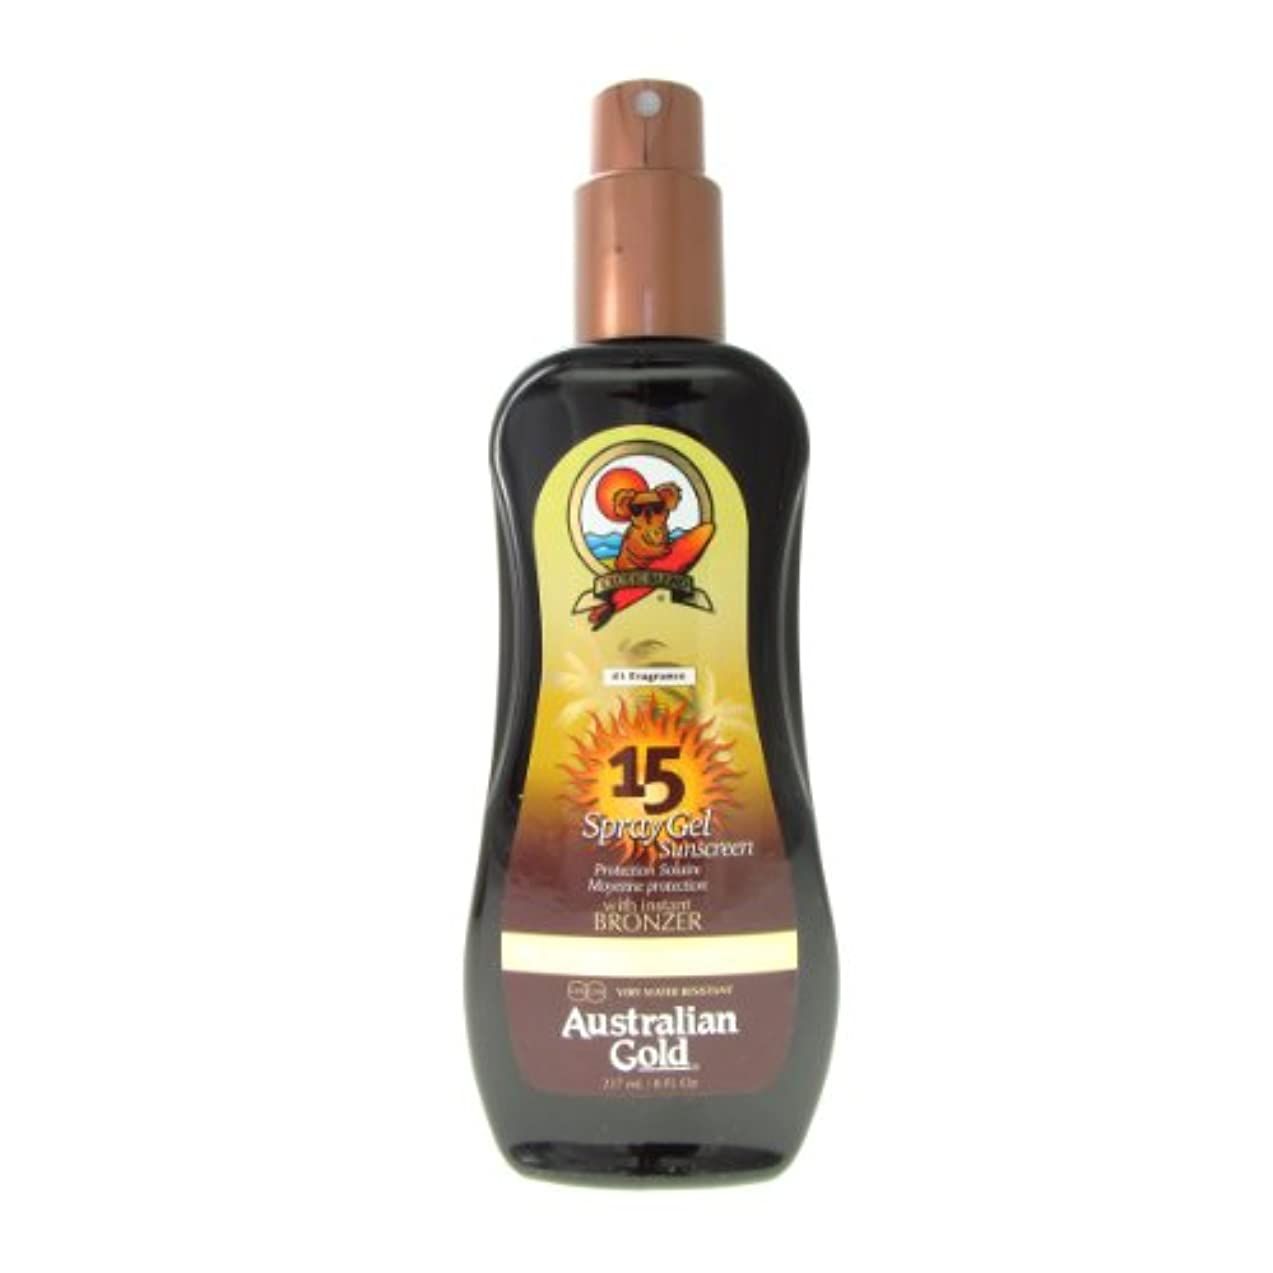 ひどく童謡シーボードAustralian Gold Spray Gel Spf15 Instant Bronzer 237ml [並行輸入品]